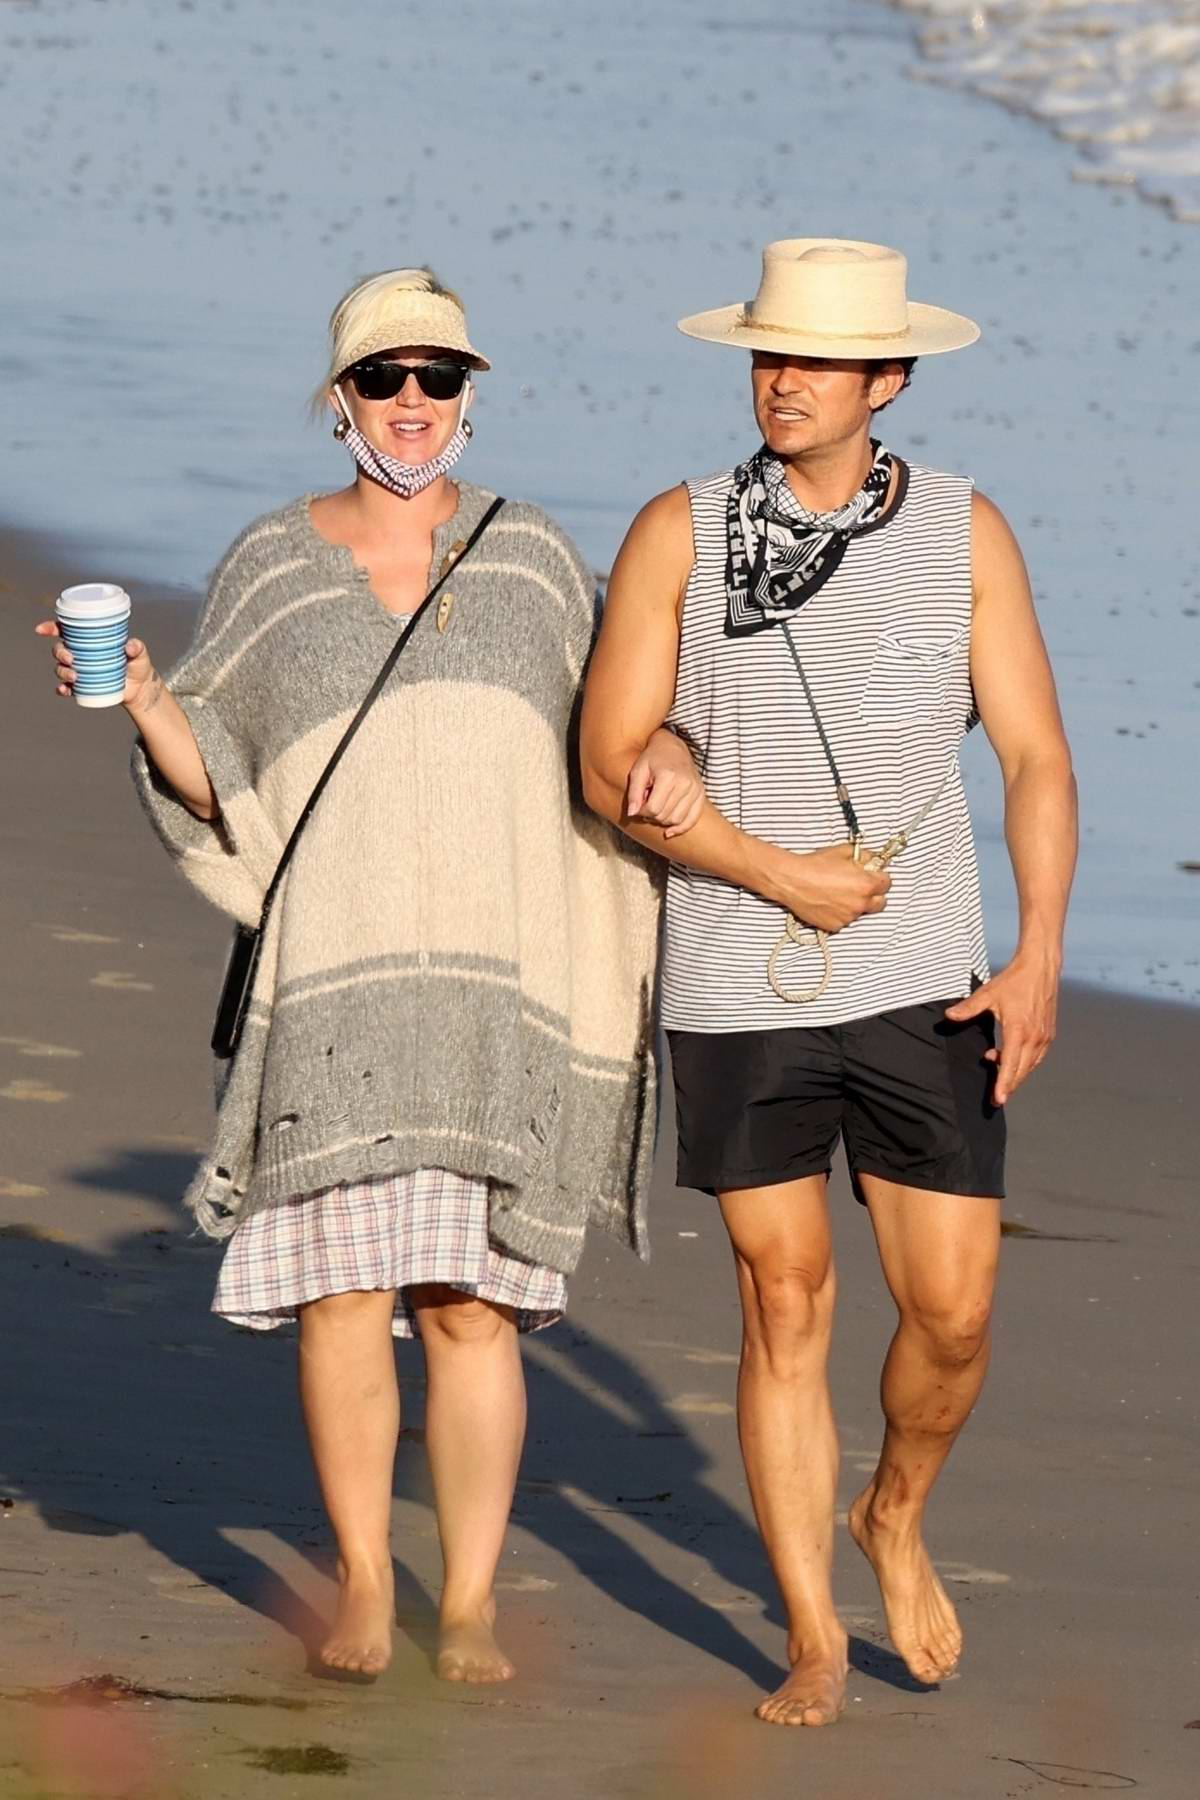 Katy Perry and Orlando Bloom enjoy a late-afternoon stroll on the beach in Santa Barbara, California